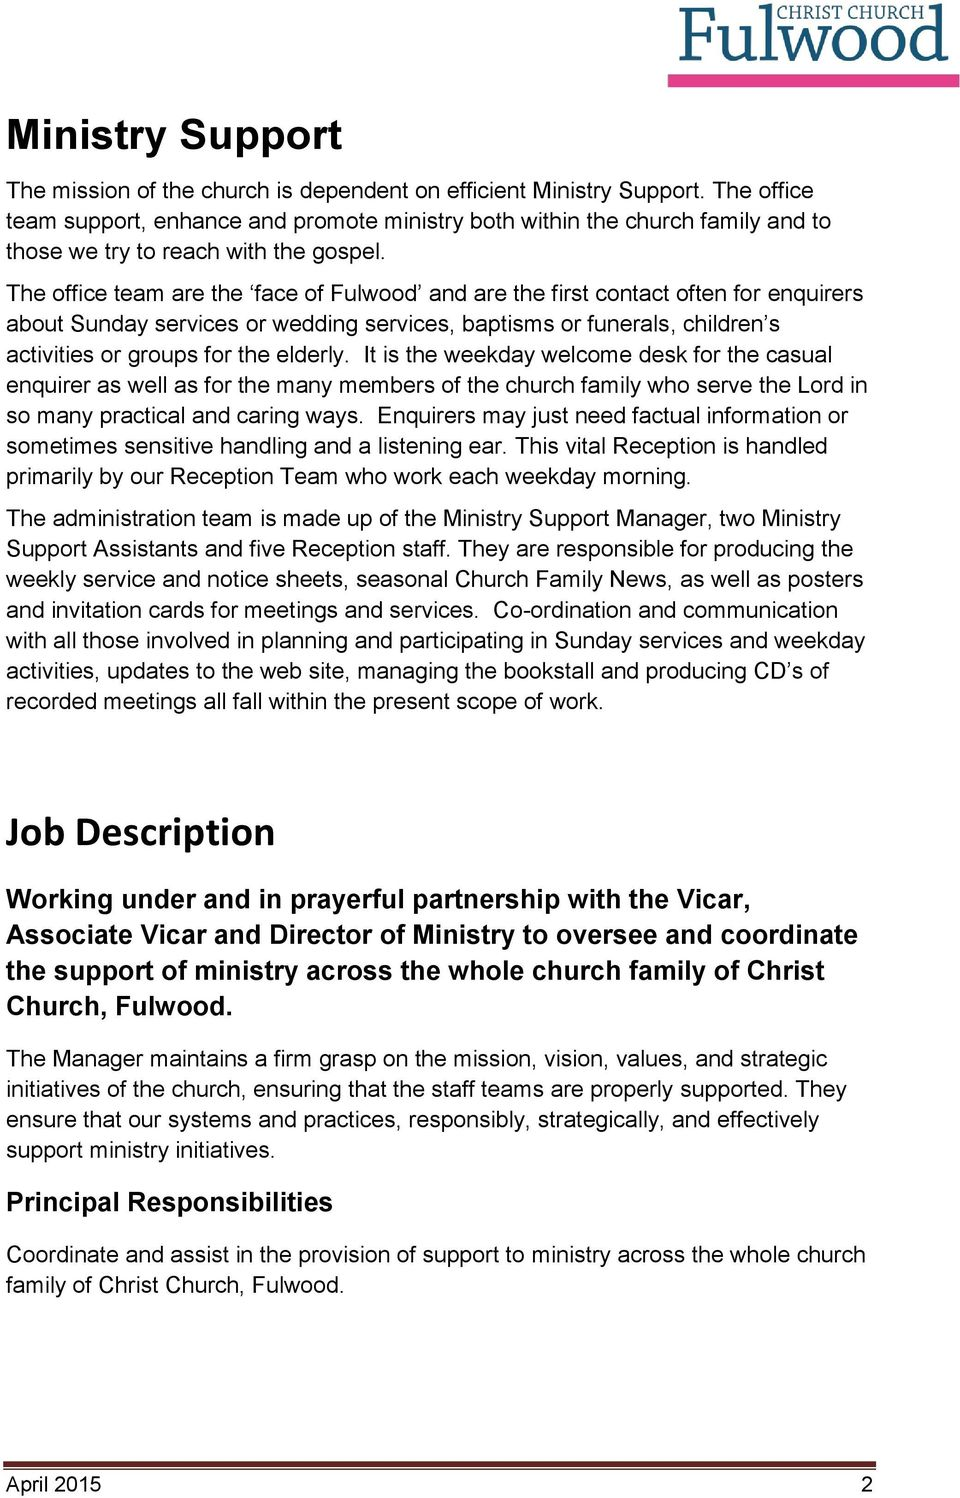 The office team are the face of Fulwood and are the first contact often for enquirers about Sunday services or wedding services, baptisms or funerals, children s activities or groups for the elderly.